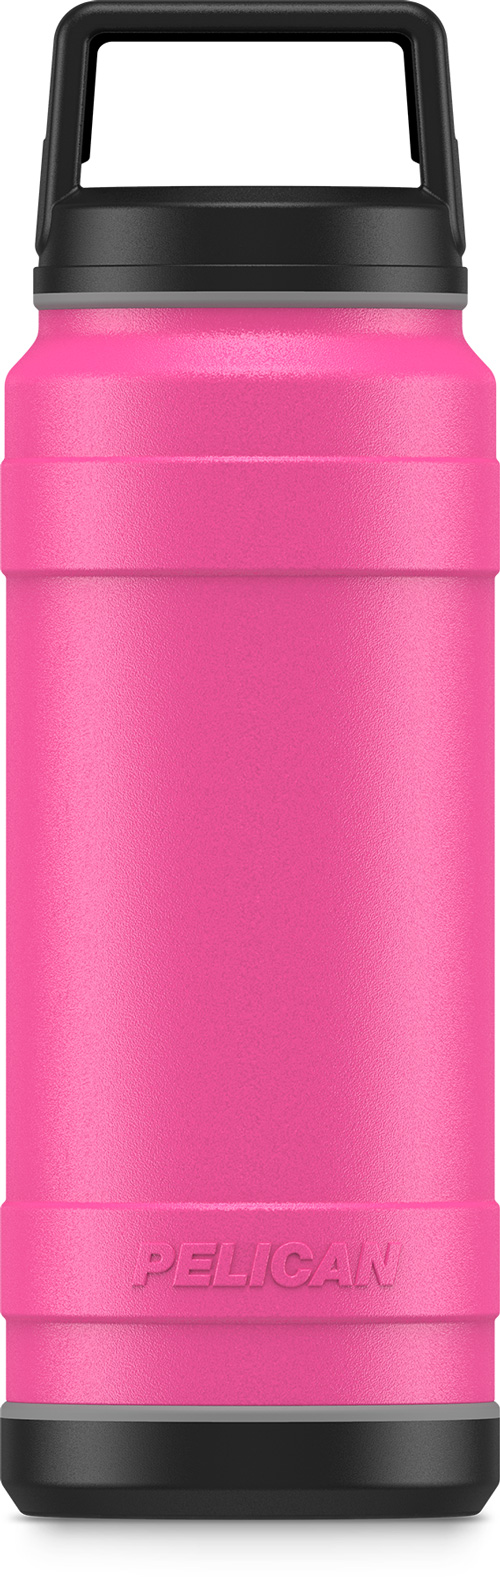 Pelican Traveler 18 Oz Bottle - Screw Top Leak Proof Ss Pink